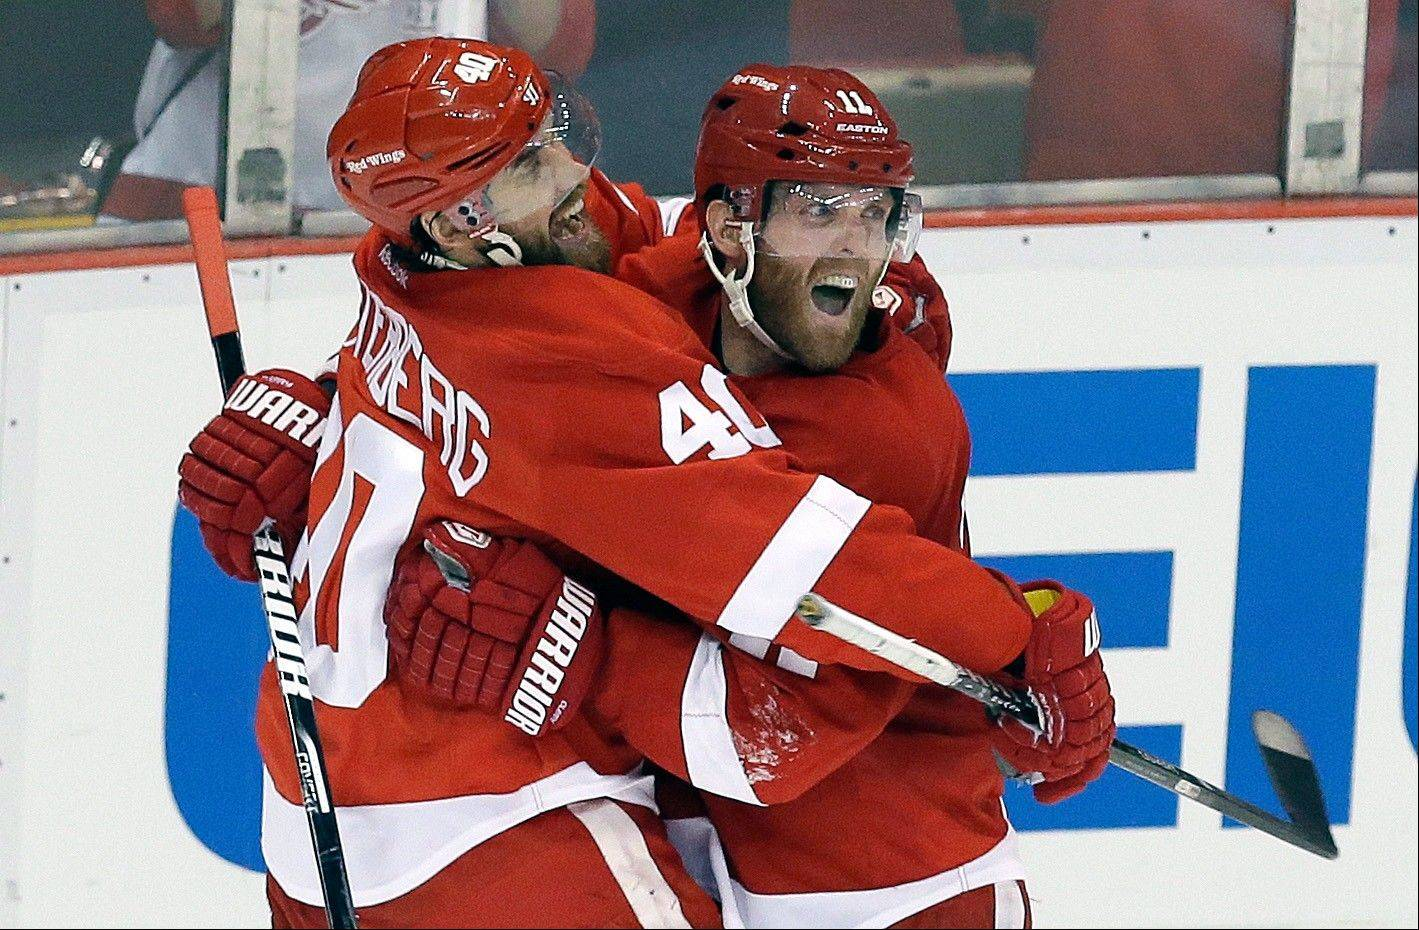 Detroit Red Wings right wing Daniel Cleary, right, celebrates his empty-net goal against the Chicago Blackhawks with teammate Henrik Zetterberg (40), of Sweden, during the third period.